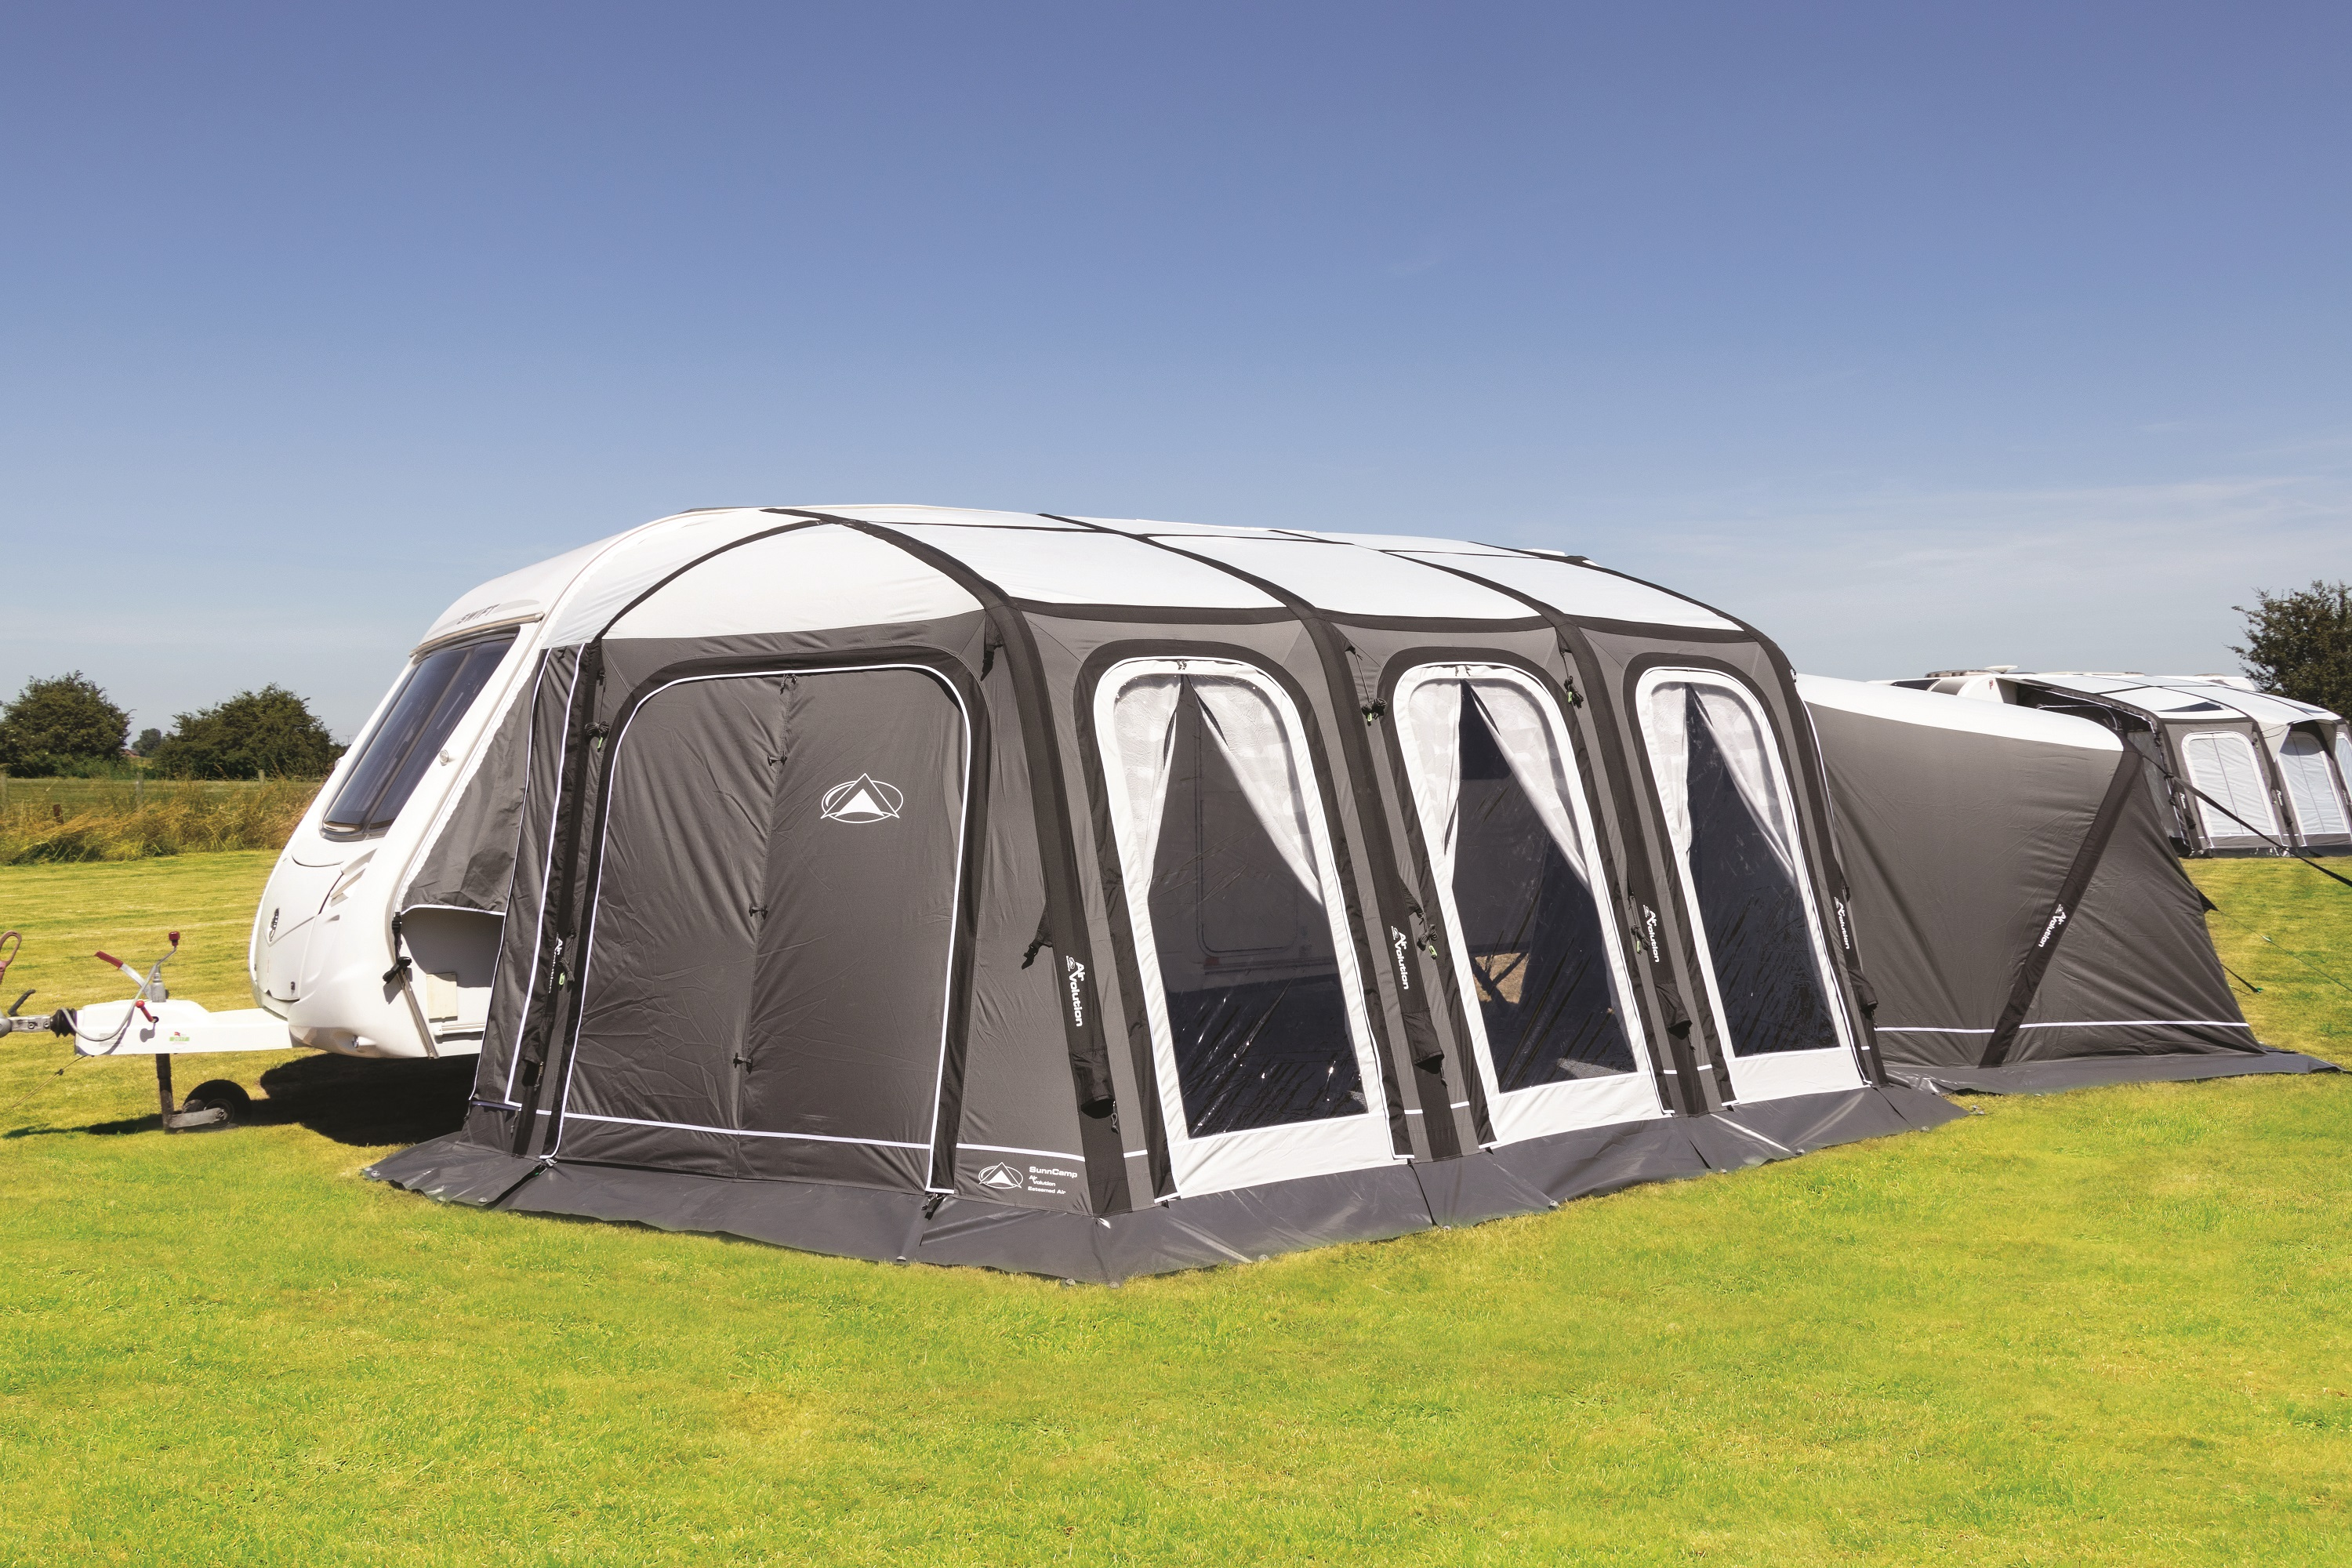 Sunncamp Esteemed AIR Full Touring Awning   2019 - Tent ...